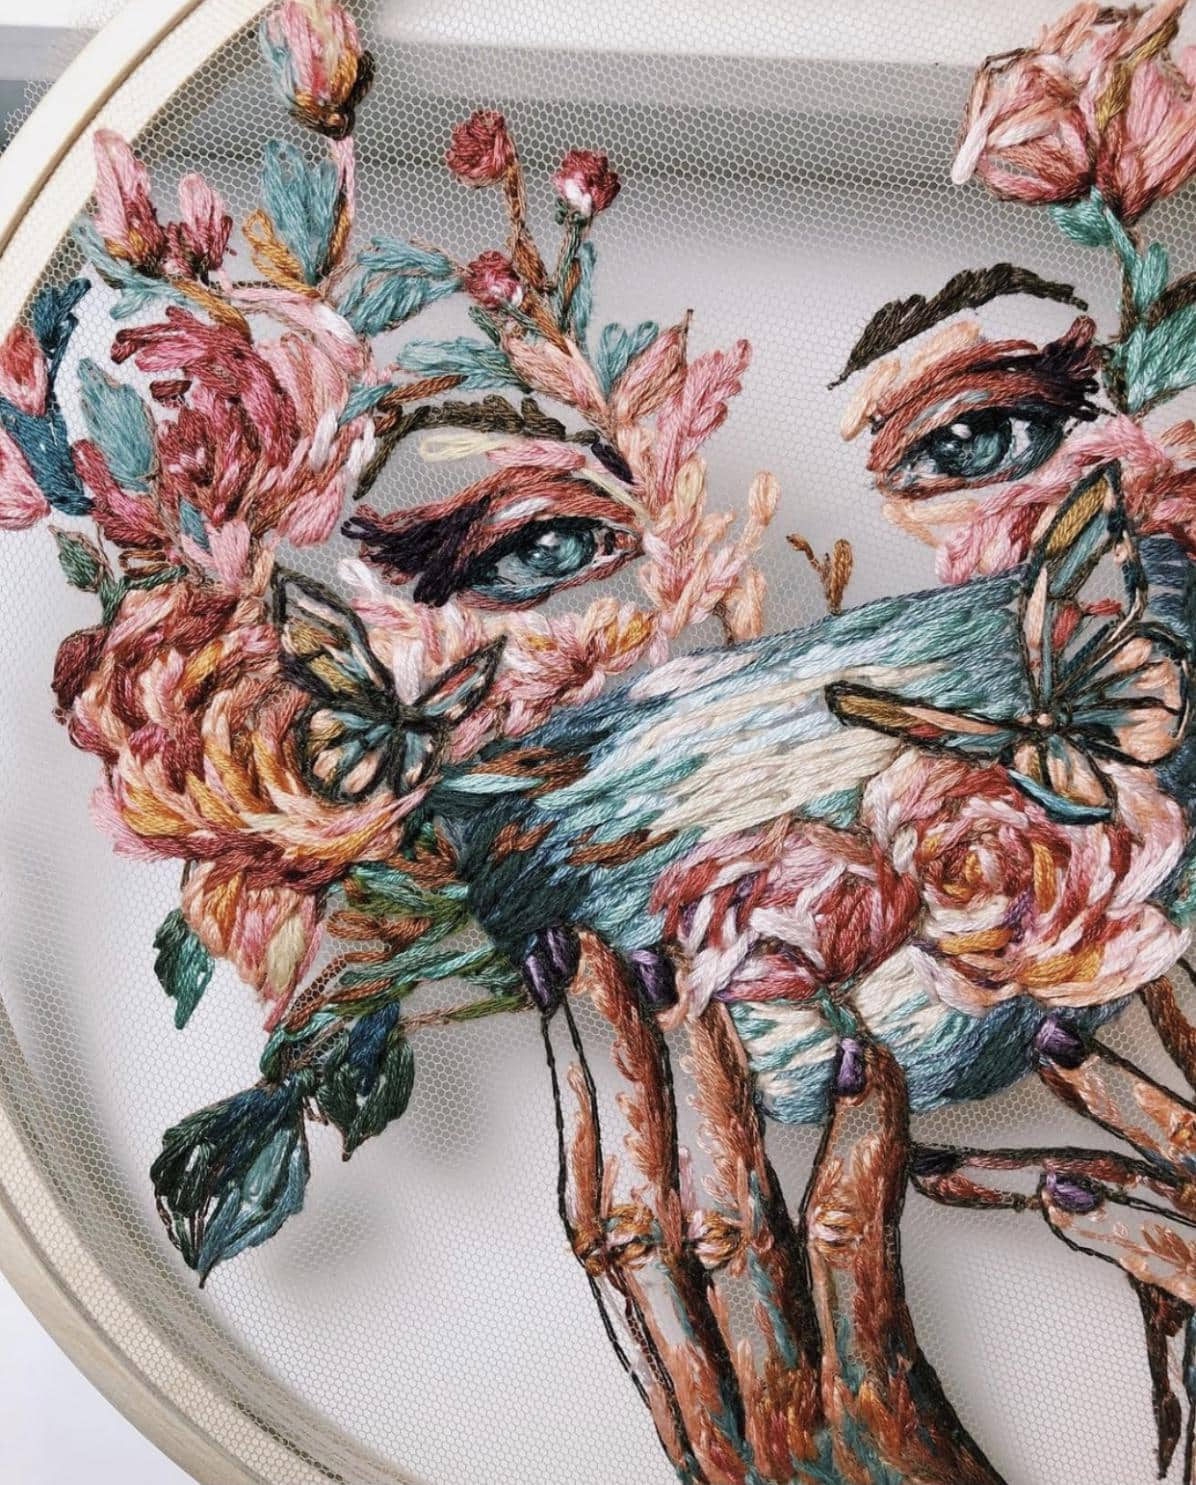 Floral Face embroidery by Kate Marchenko